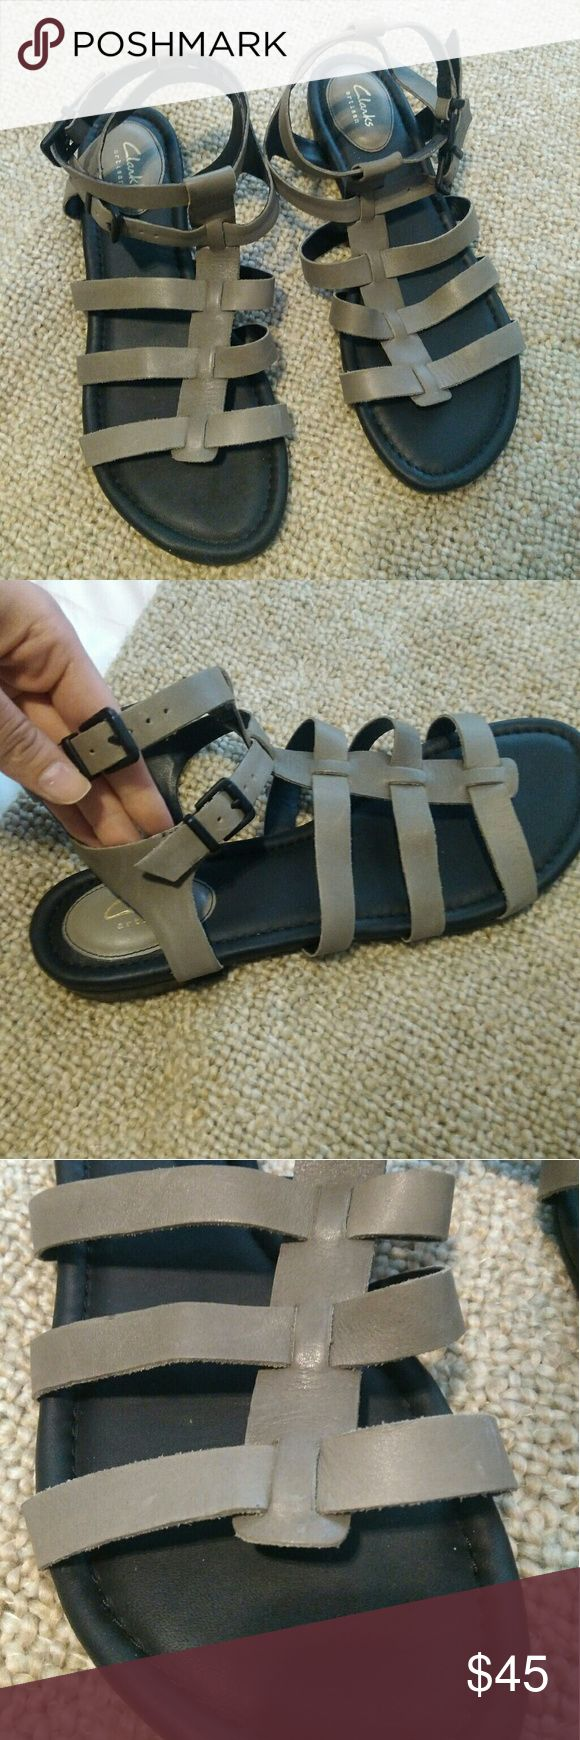 BNWOT Clarks sandals, size 12! Never actually worn besides trying on in the store. Beautiful leather, they were just a little too small  on me so they're on to the next girl. Let me know if you have questions or need measurements! Clarks Shoes